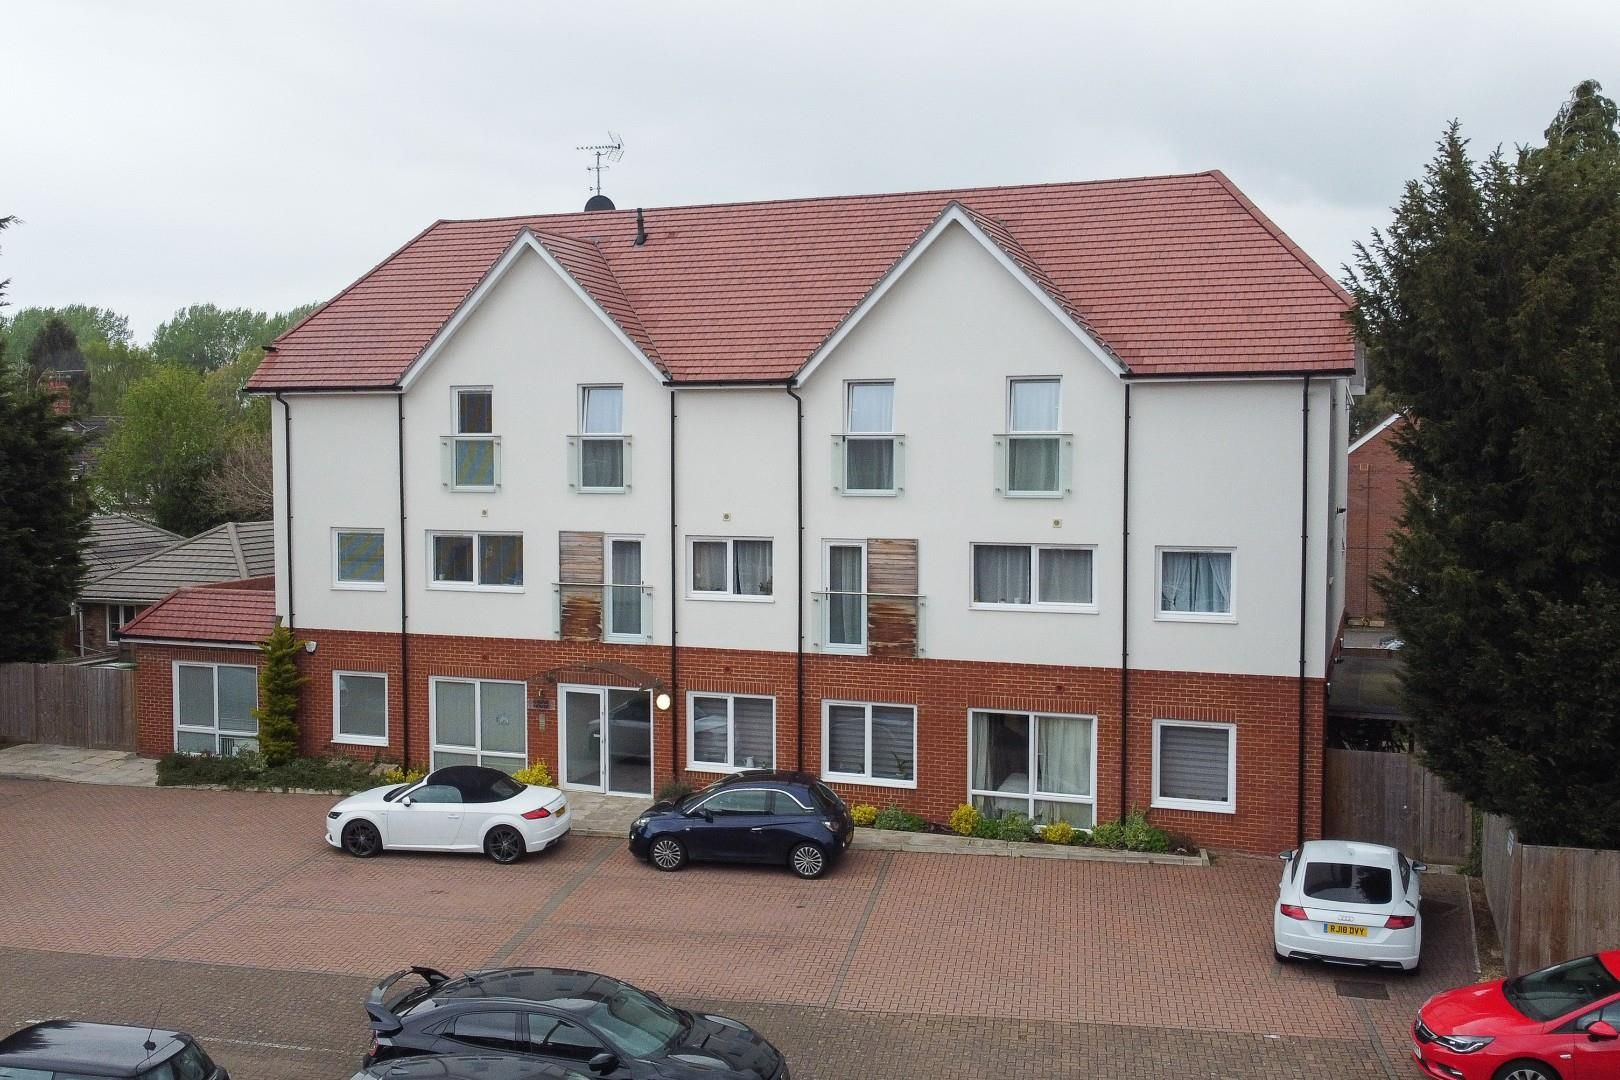 2 bed apartment for sale, GU14